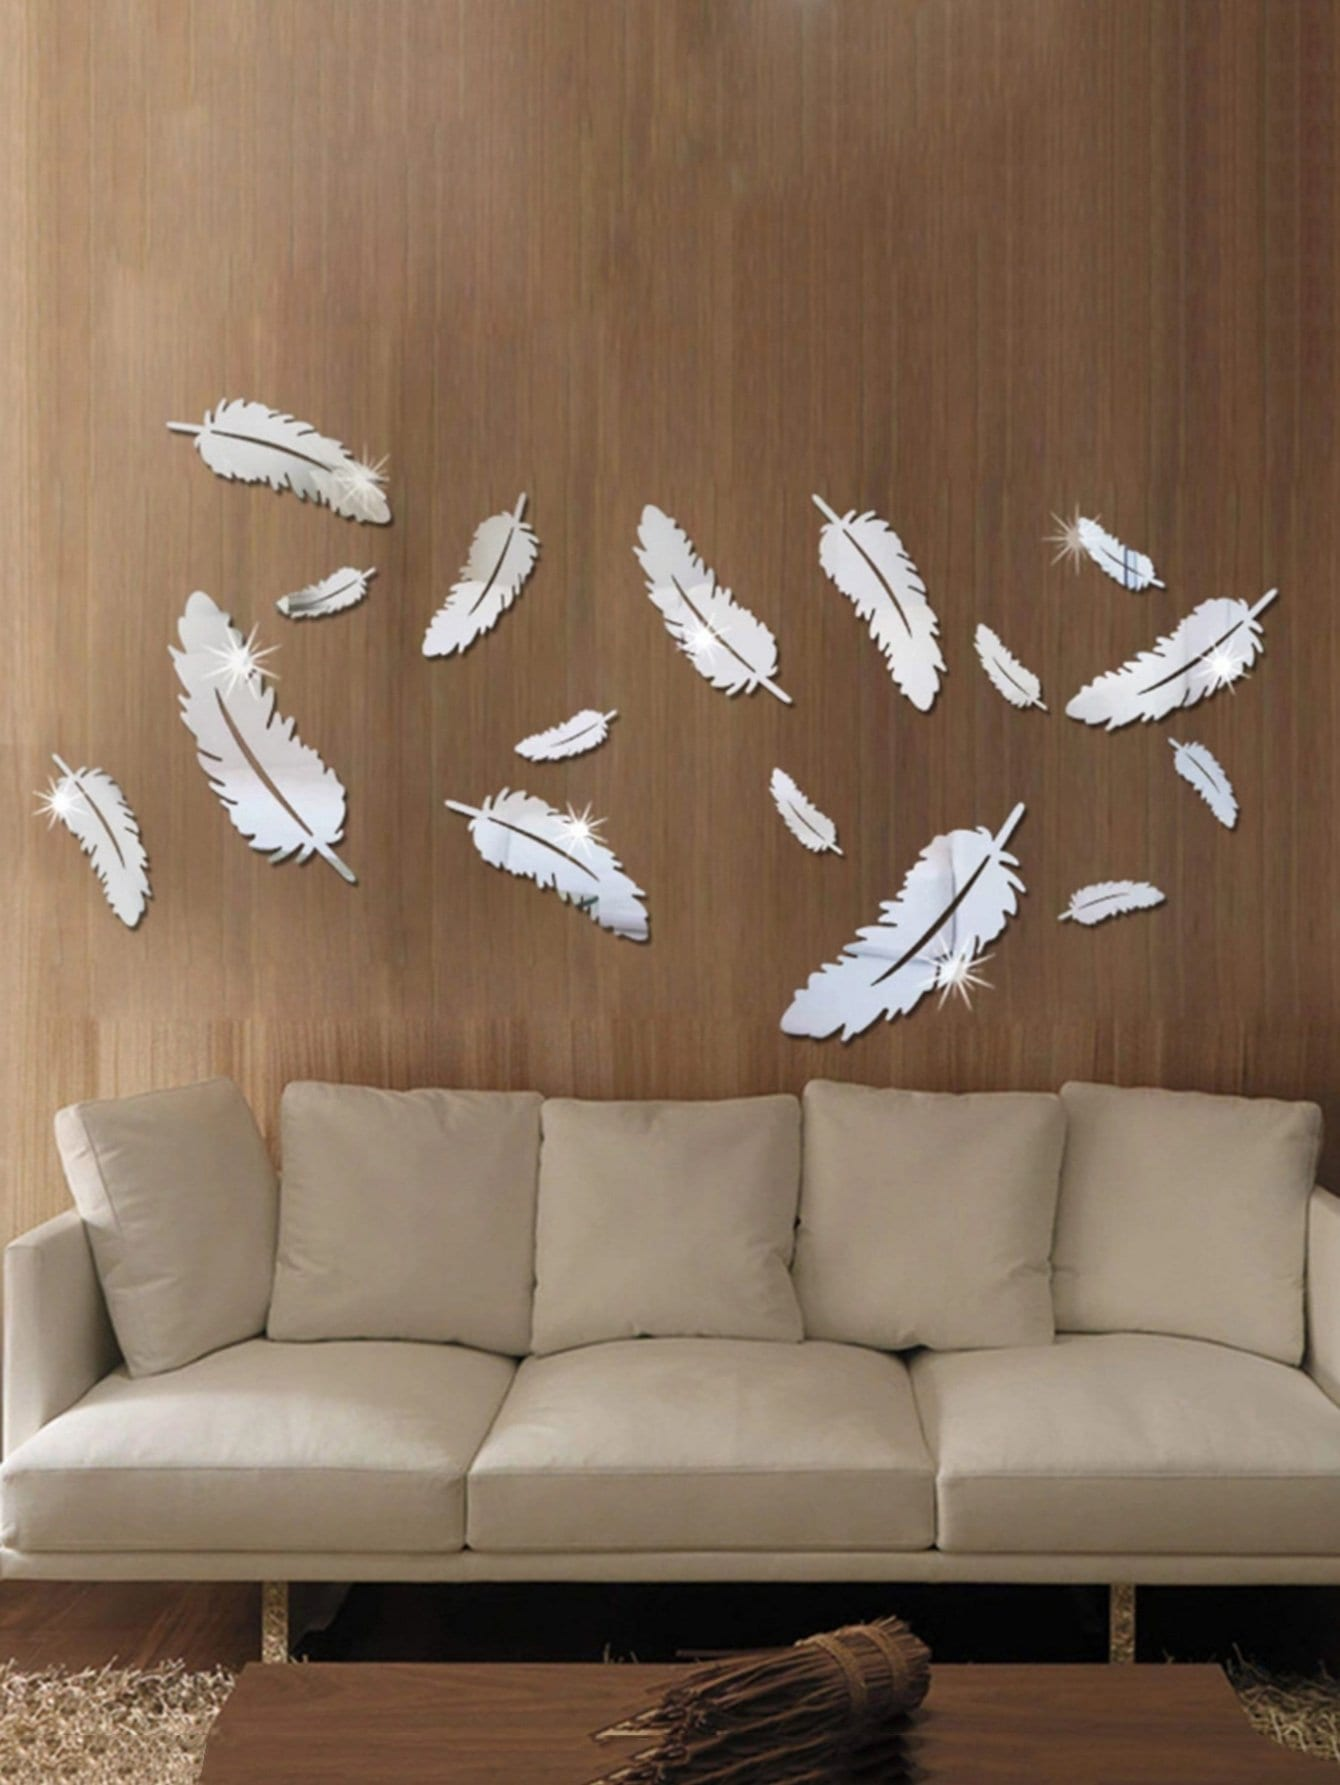 Feather Mirror Wall Sticker Set 8pcs oversized feather door sticker